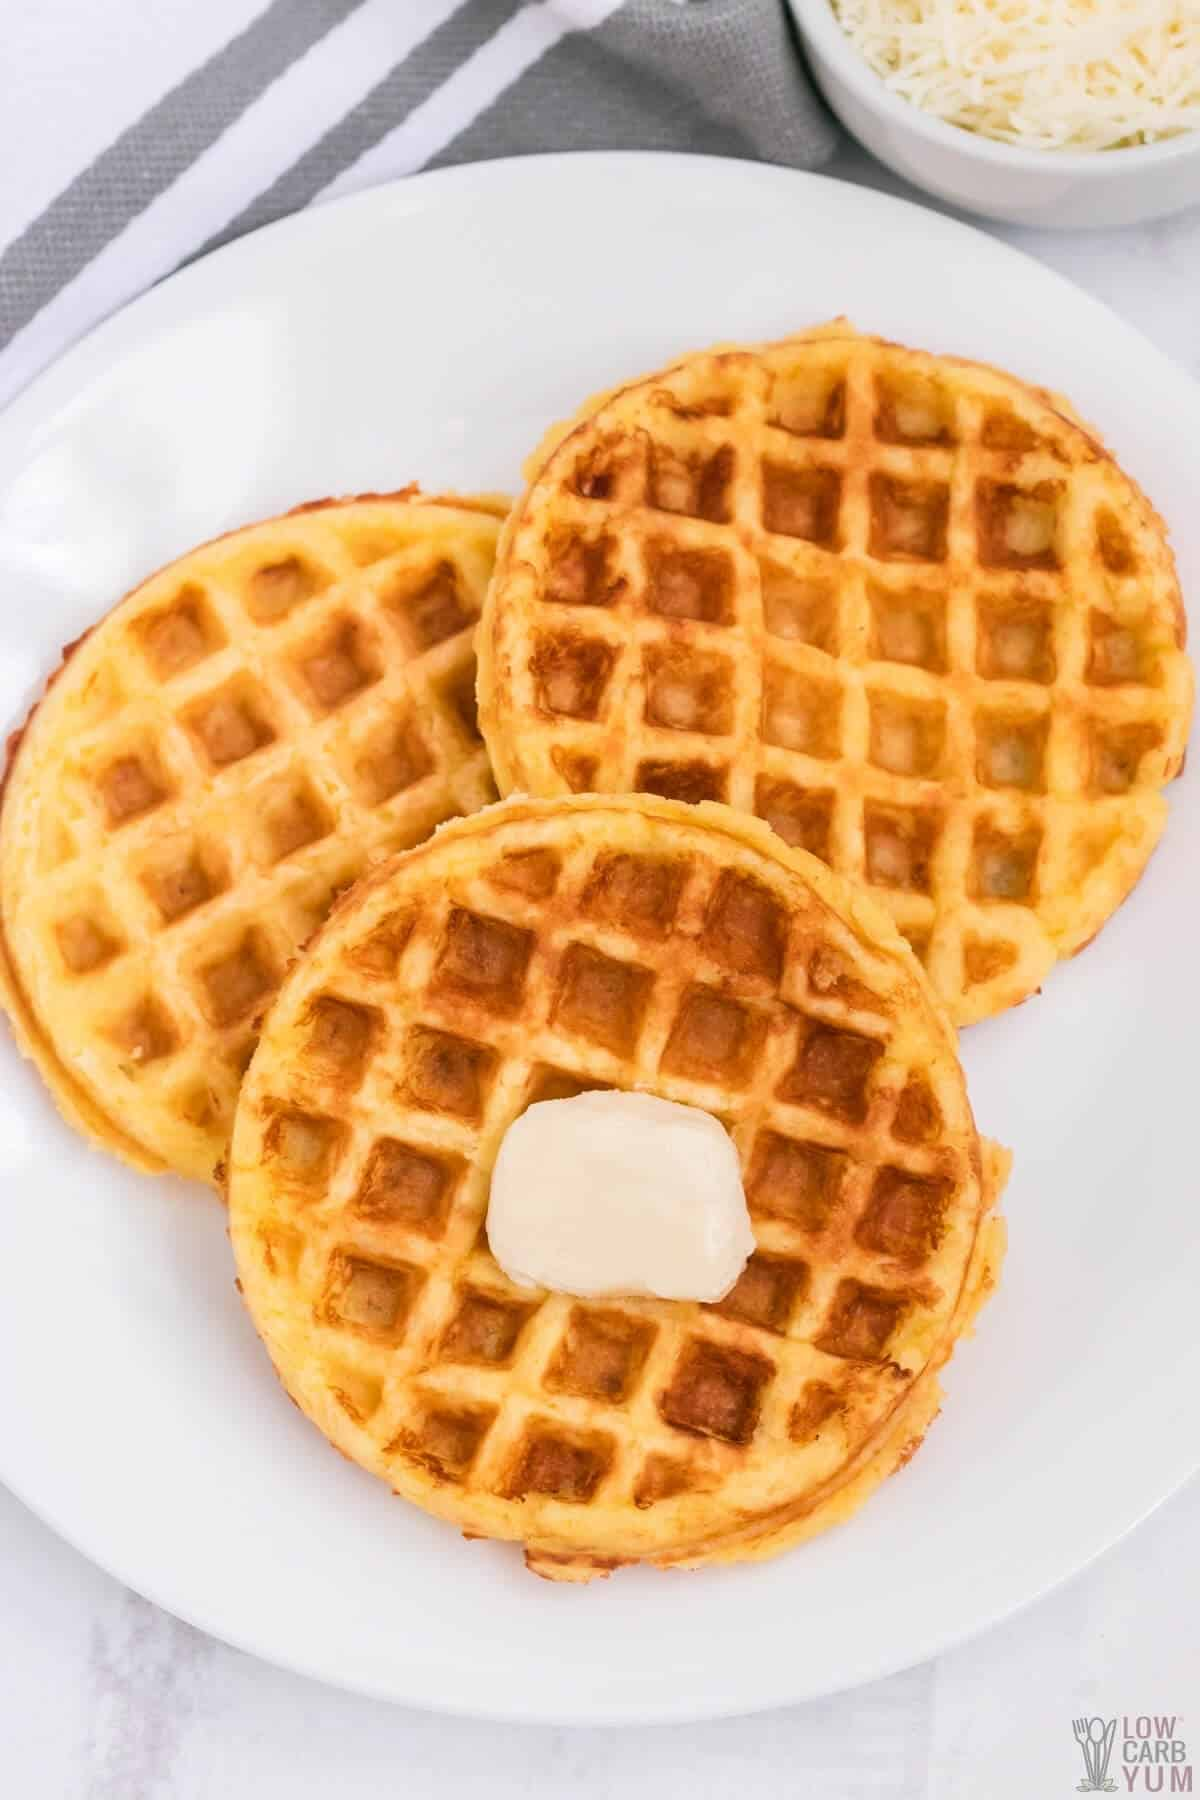 three chaffles on white plate with pat of butter